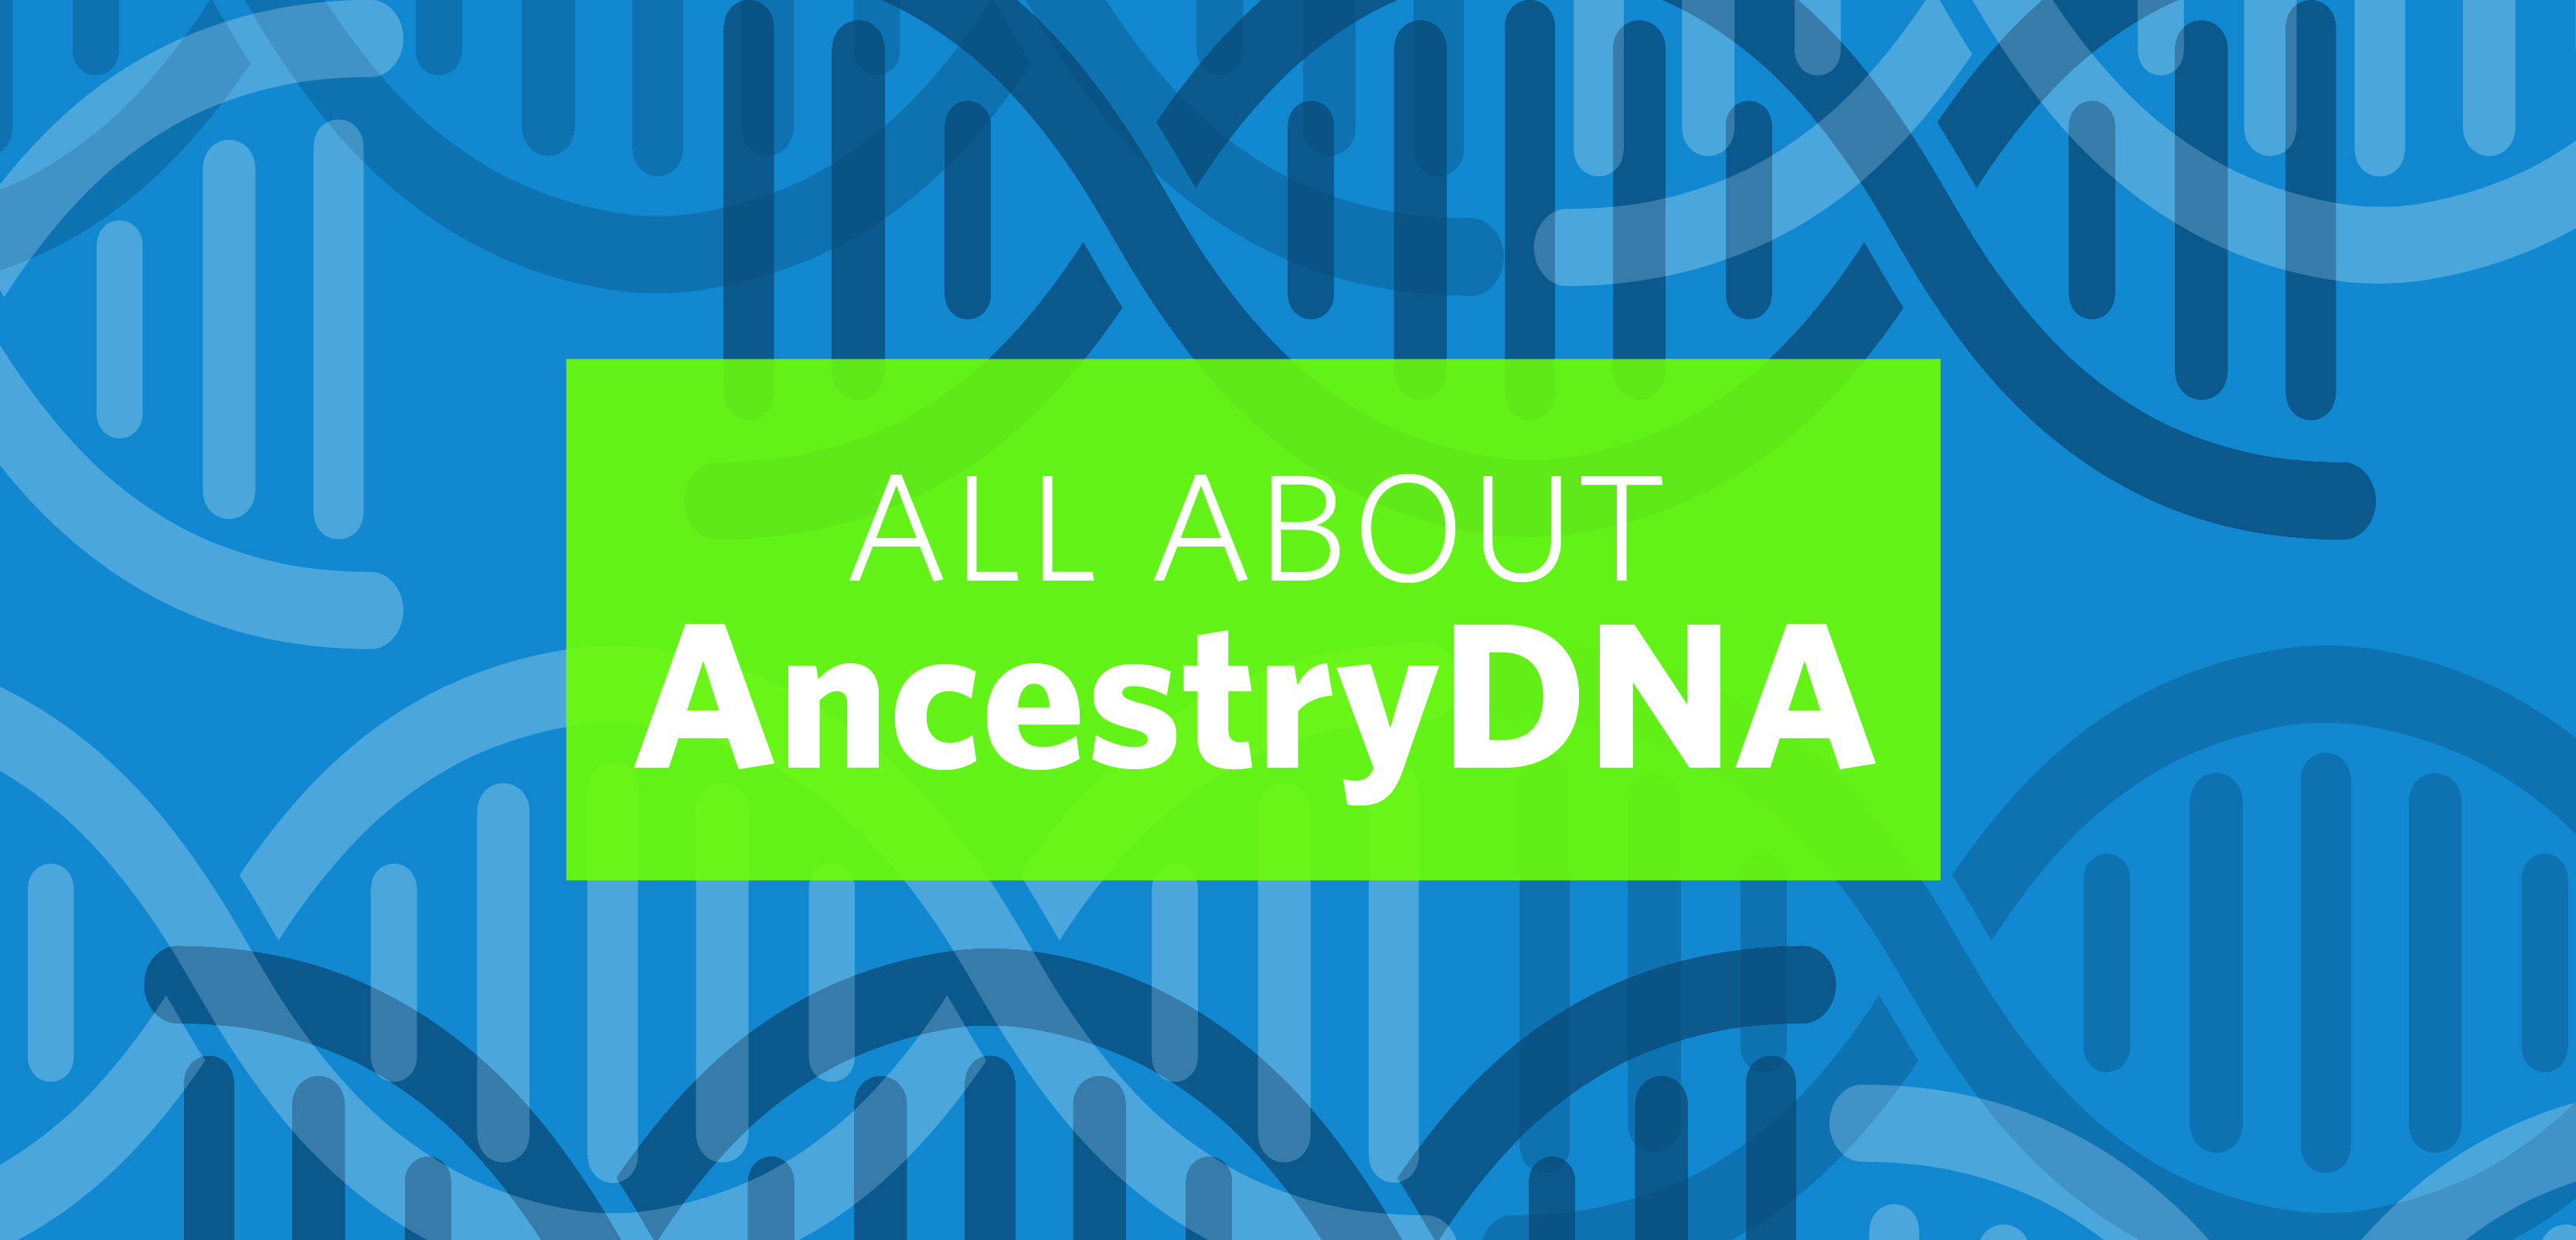 In this workshop, get a live webinar that will help you make the most of your DNA results with AncestryDNA.